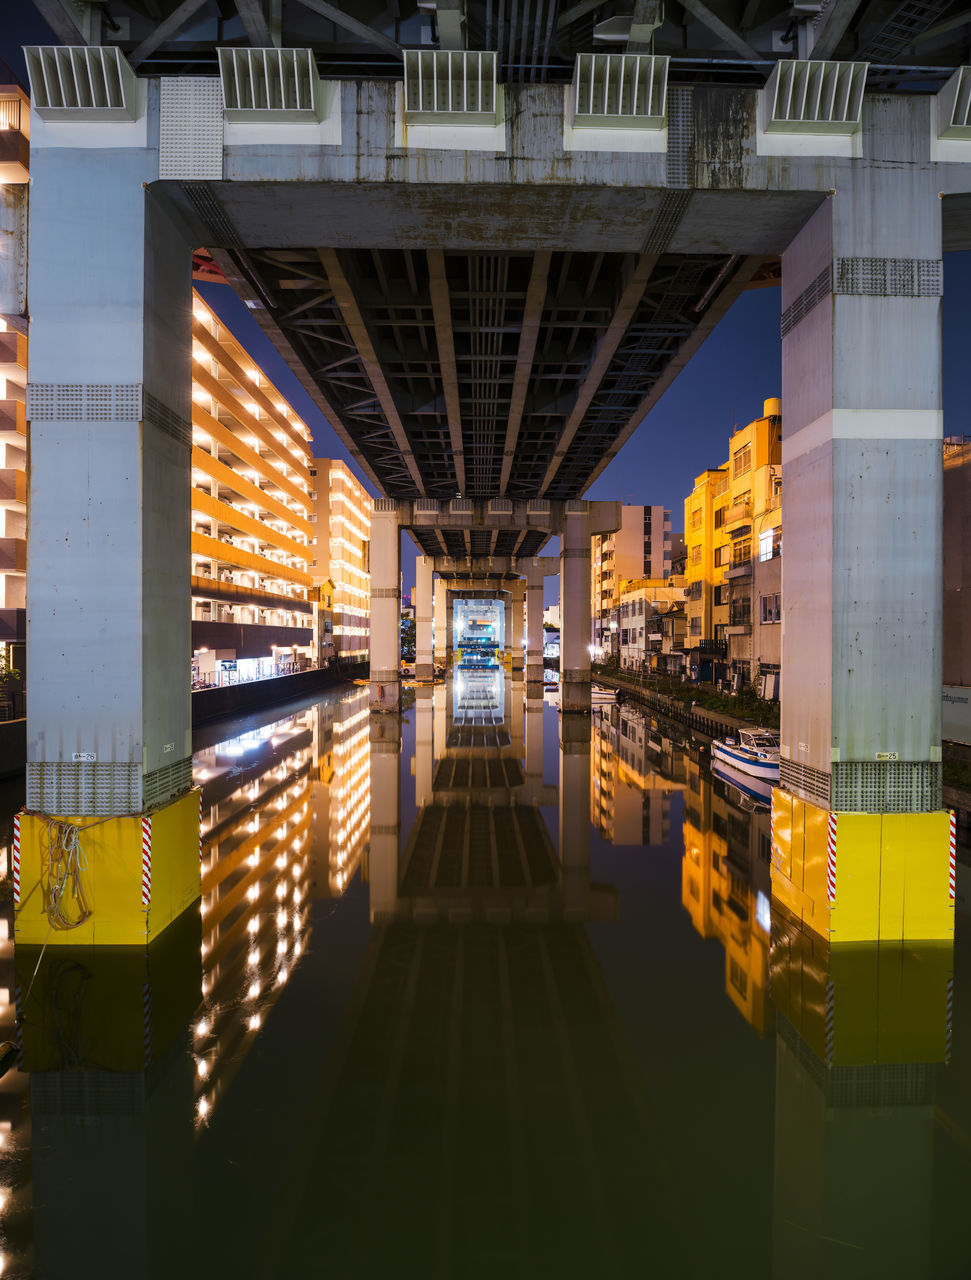 architecture, reflection, built structure, illuminated, connection, symmetry, bridge - man made structure, building exterior, no people, modern, night, indoors, city, water, sky